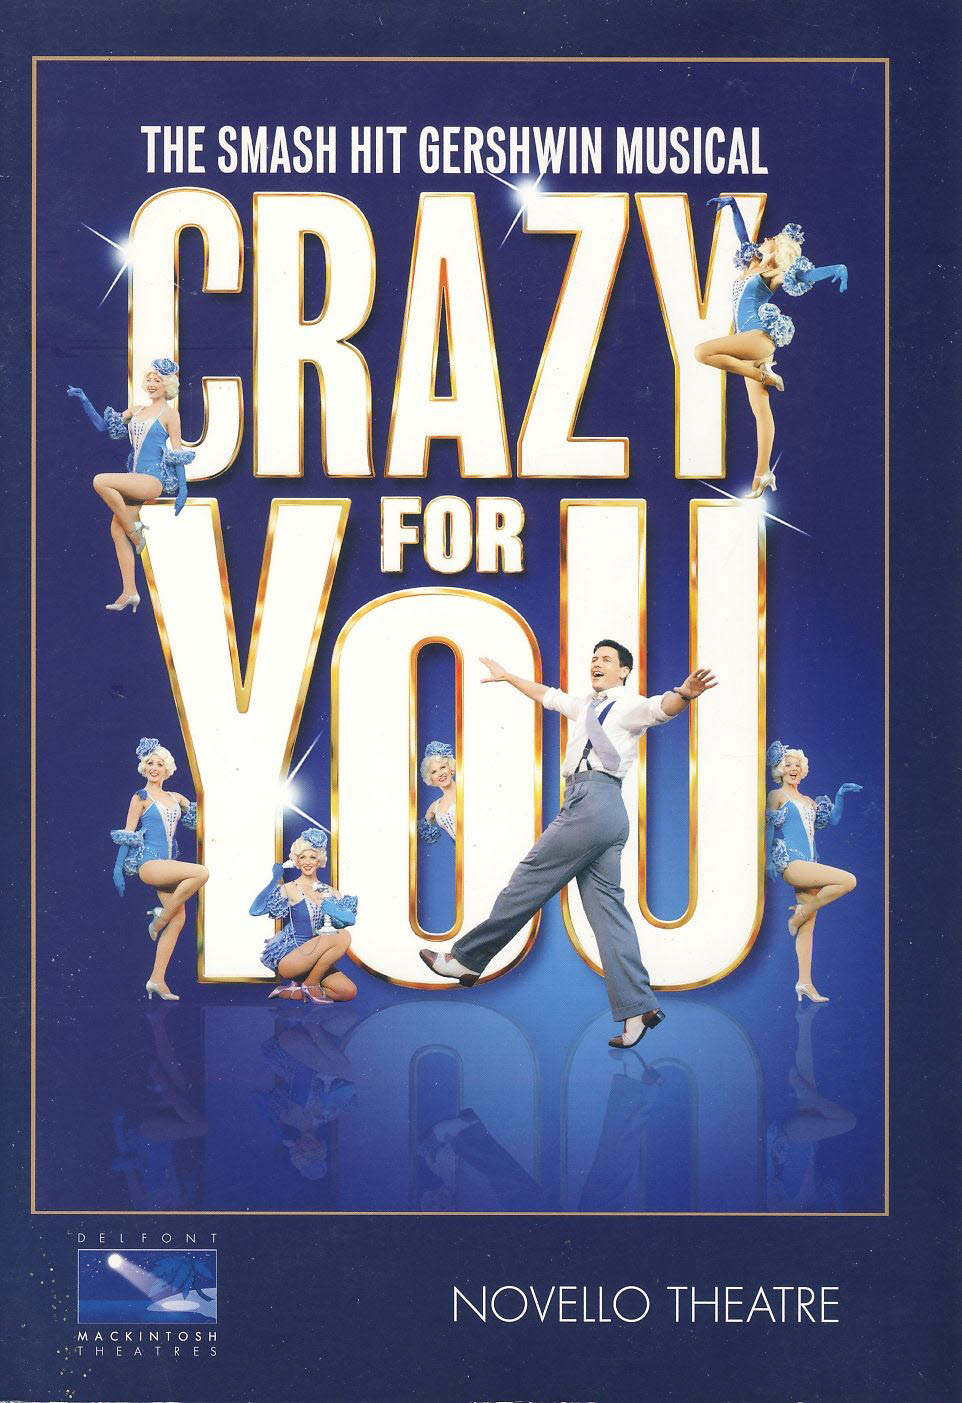 GERSHWIN MUSICAL 2011 Crazy for You NOVELLO Theatre Programme refb101046 Pre-owned Programme in Very Good Condition. Measures approx 16.5cm x 23.5cm